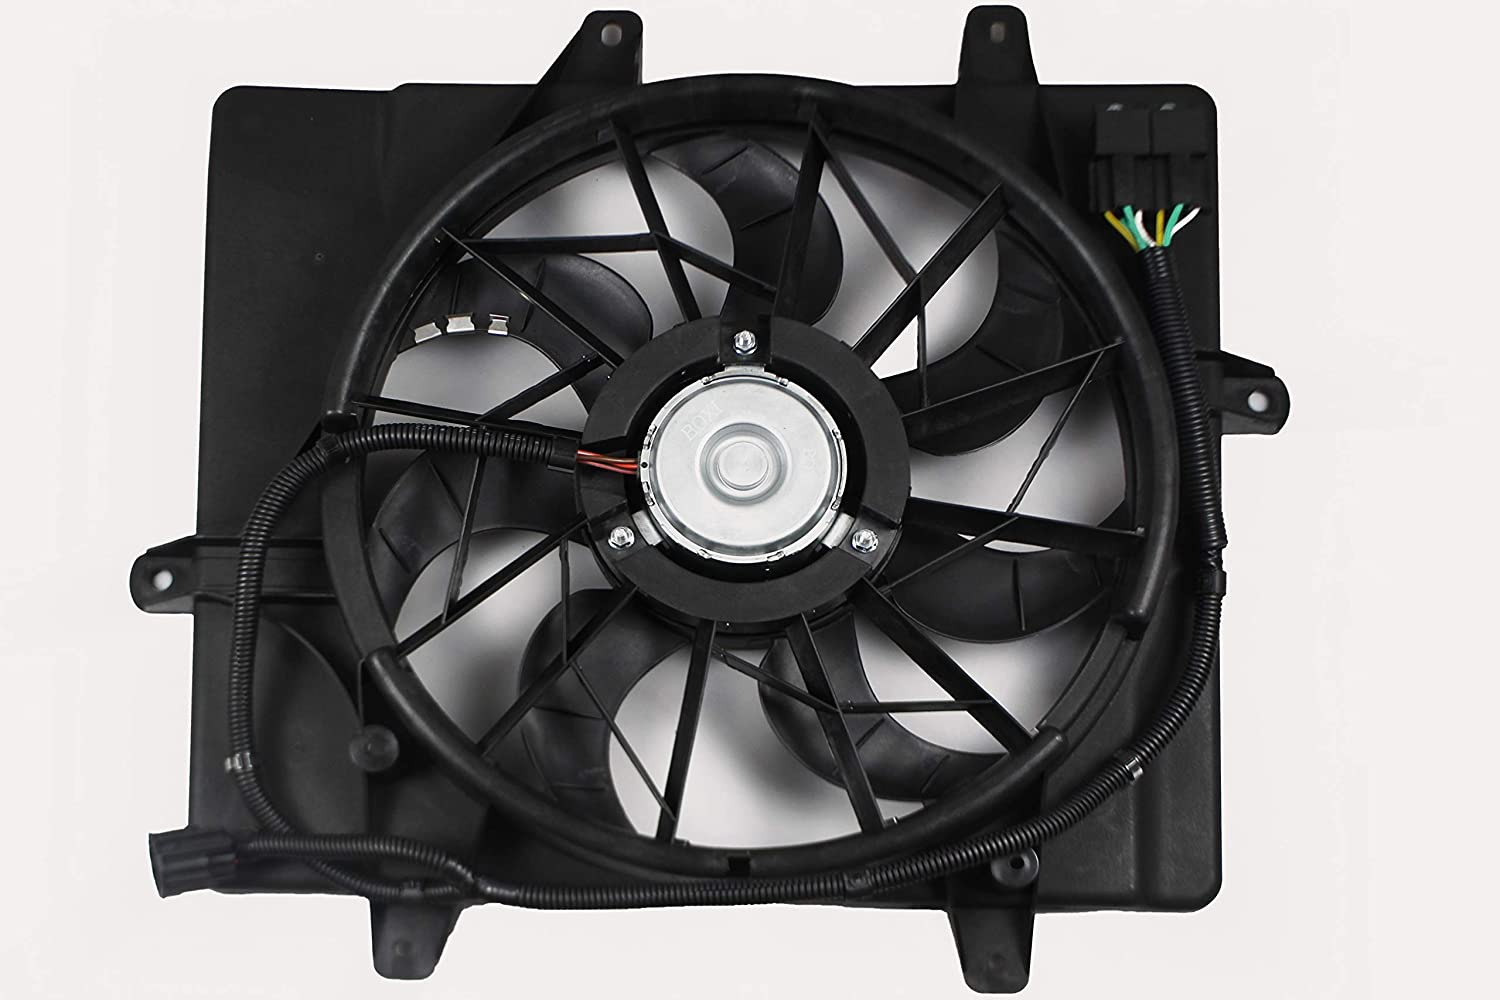 BOXI Radiator Cooling Fan Assembly For Chrysler PT Cruiser 2006-2010 (excluding Turbo Models) 5179470AA